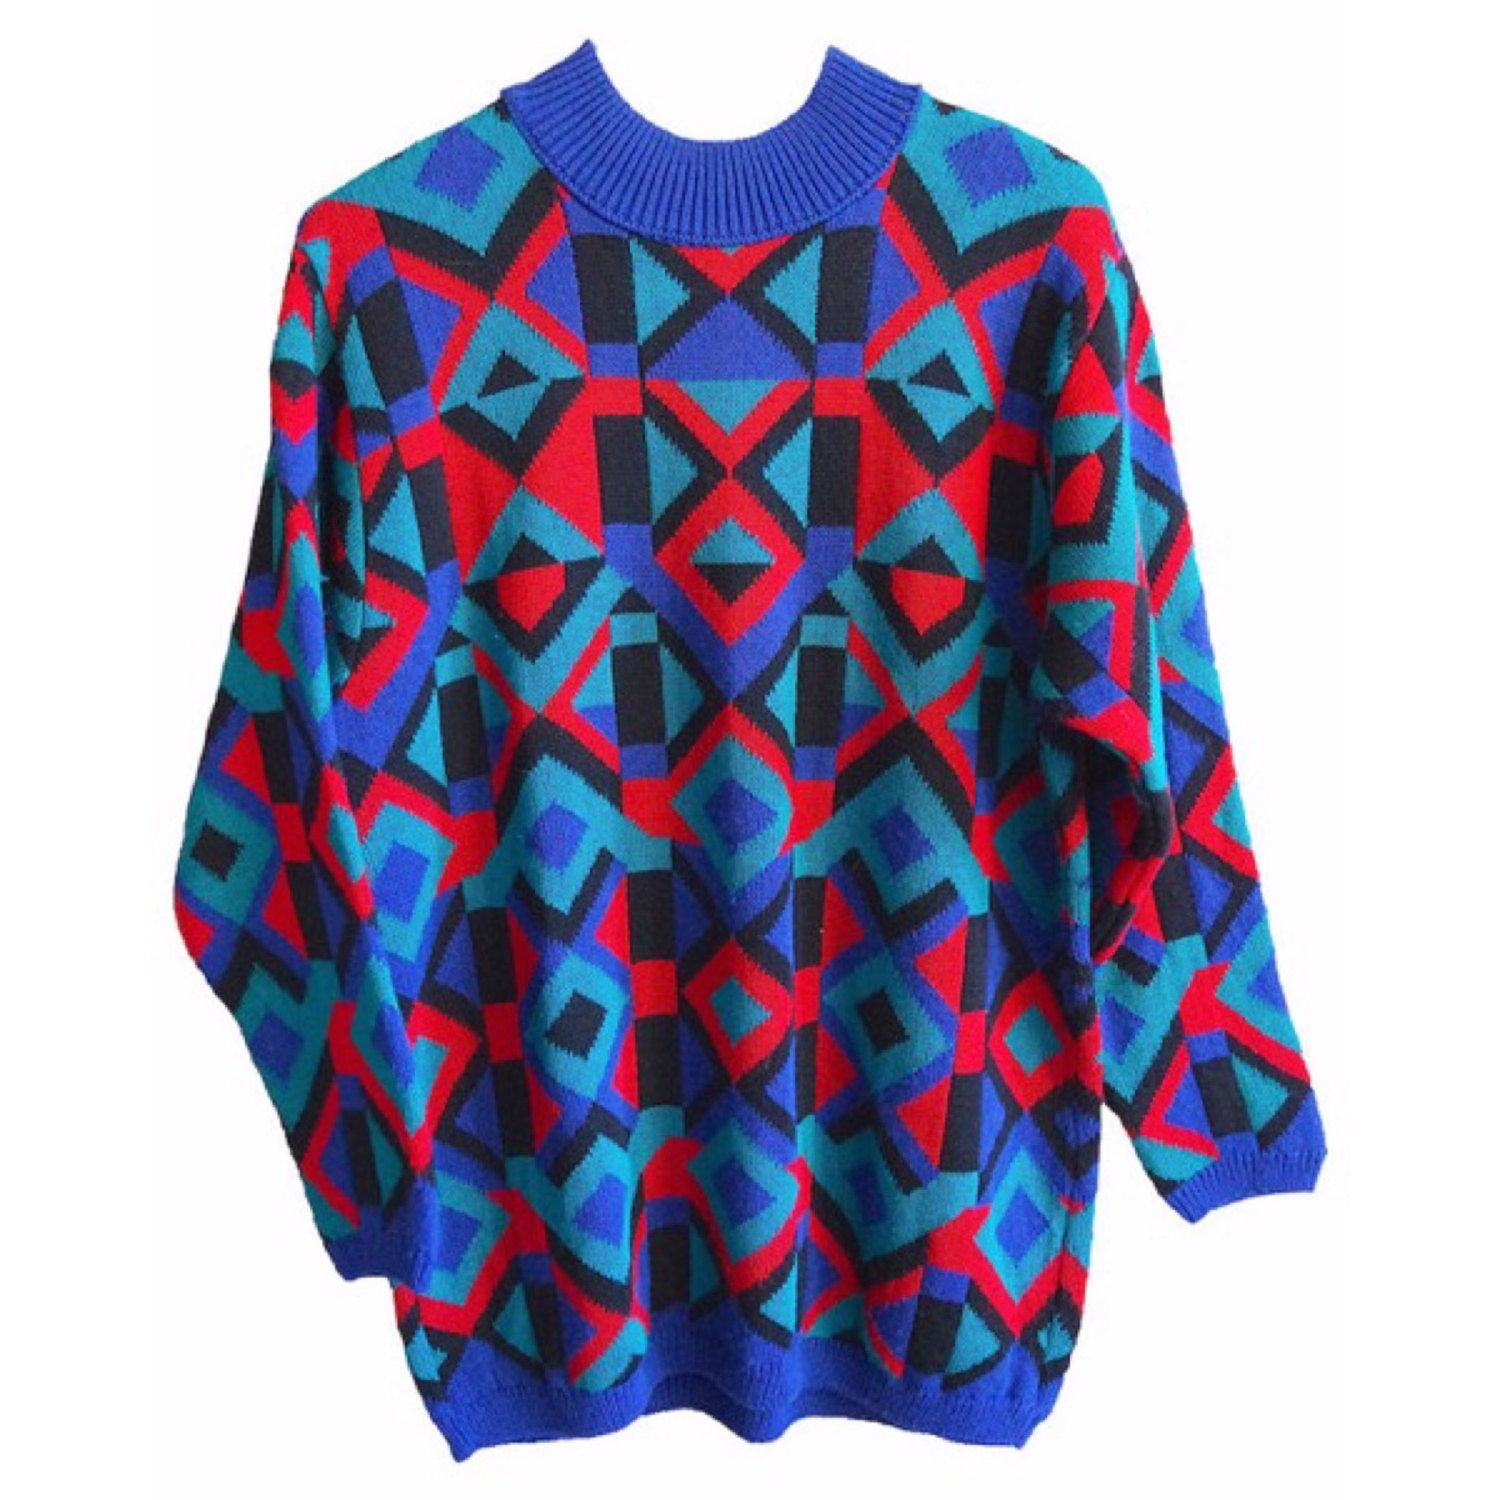 a62df702c5c347 Vintage Knit Wool Sweater Alfred Dunner mens womens size medium oversized  rad cable grandma grandpa america red blue turquoise baggy rad by ...